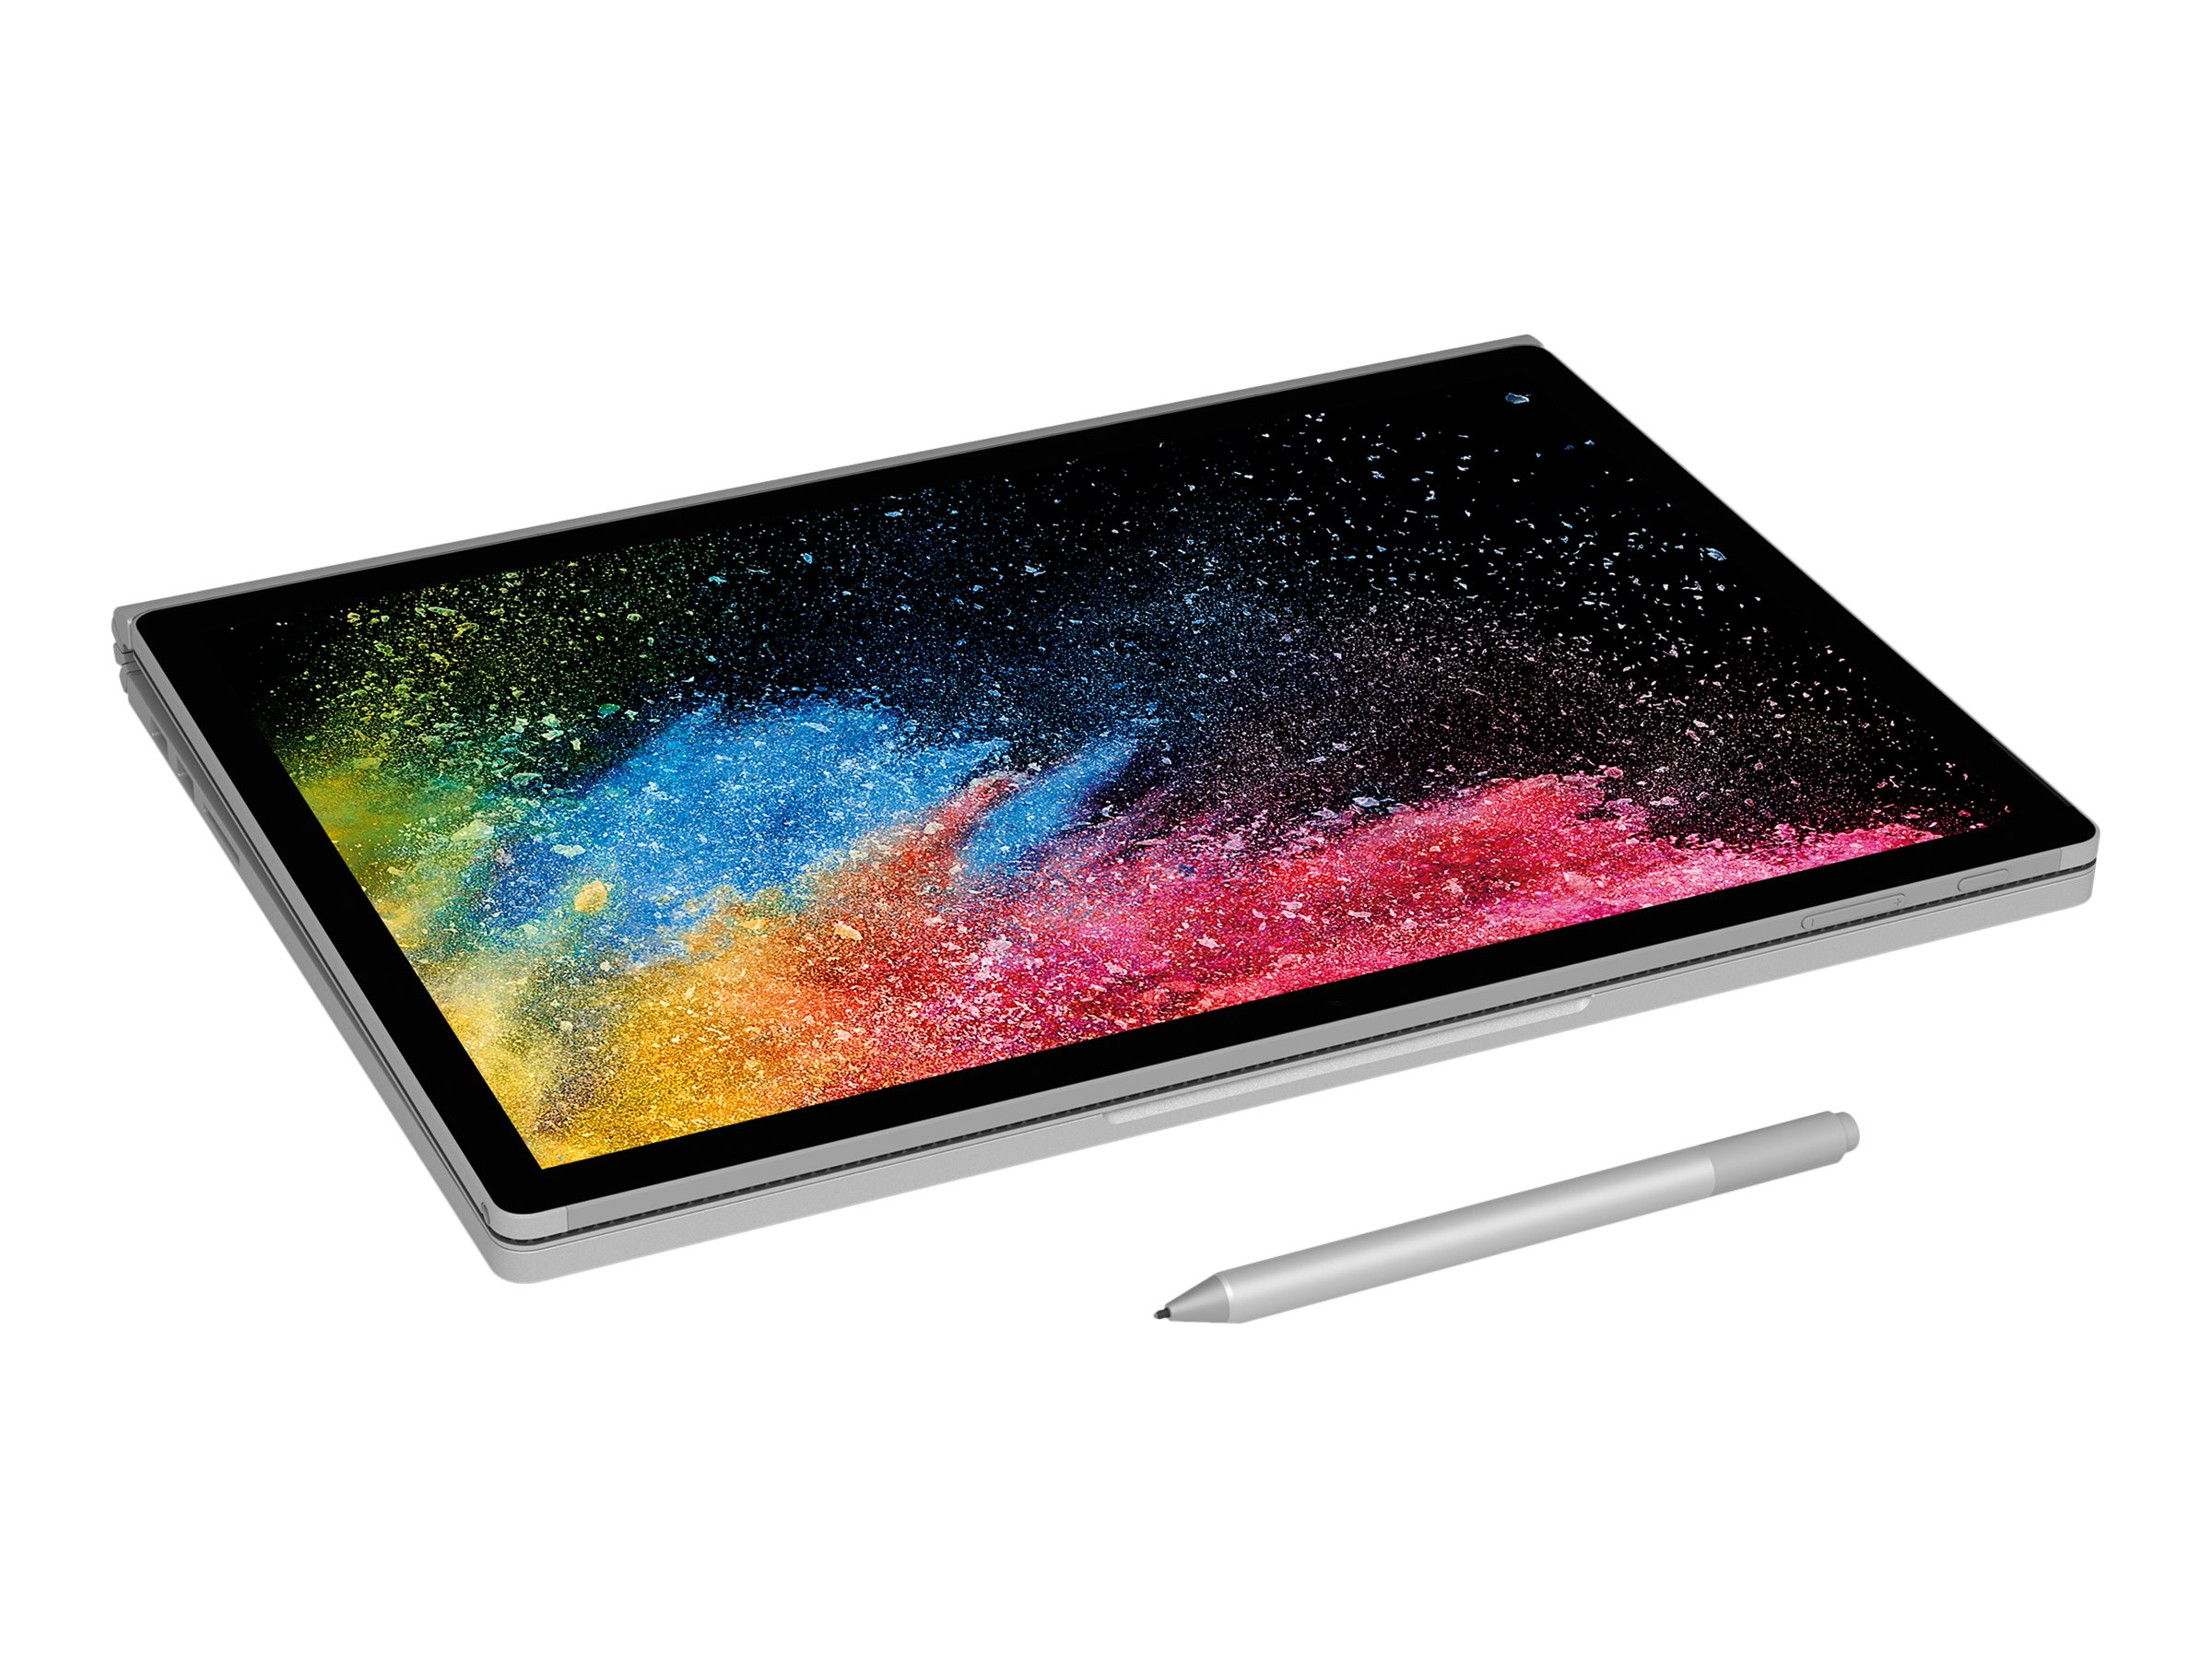 Microsoft Surface Book 2 - Tablet - mit abnehmbarer Tastatur - Core i7 8650U / 1.9 GHz - Win 10 Pro 64-Bit - 16 GB RAM